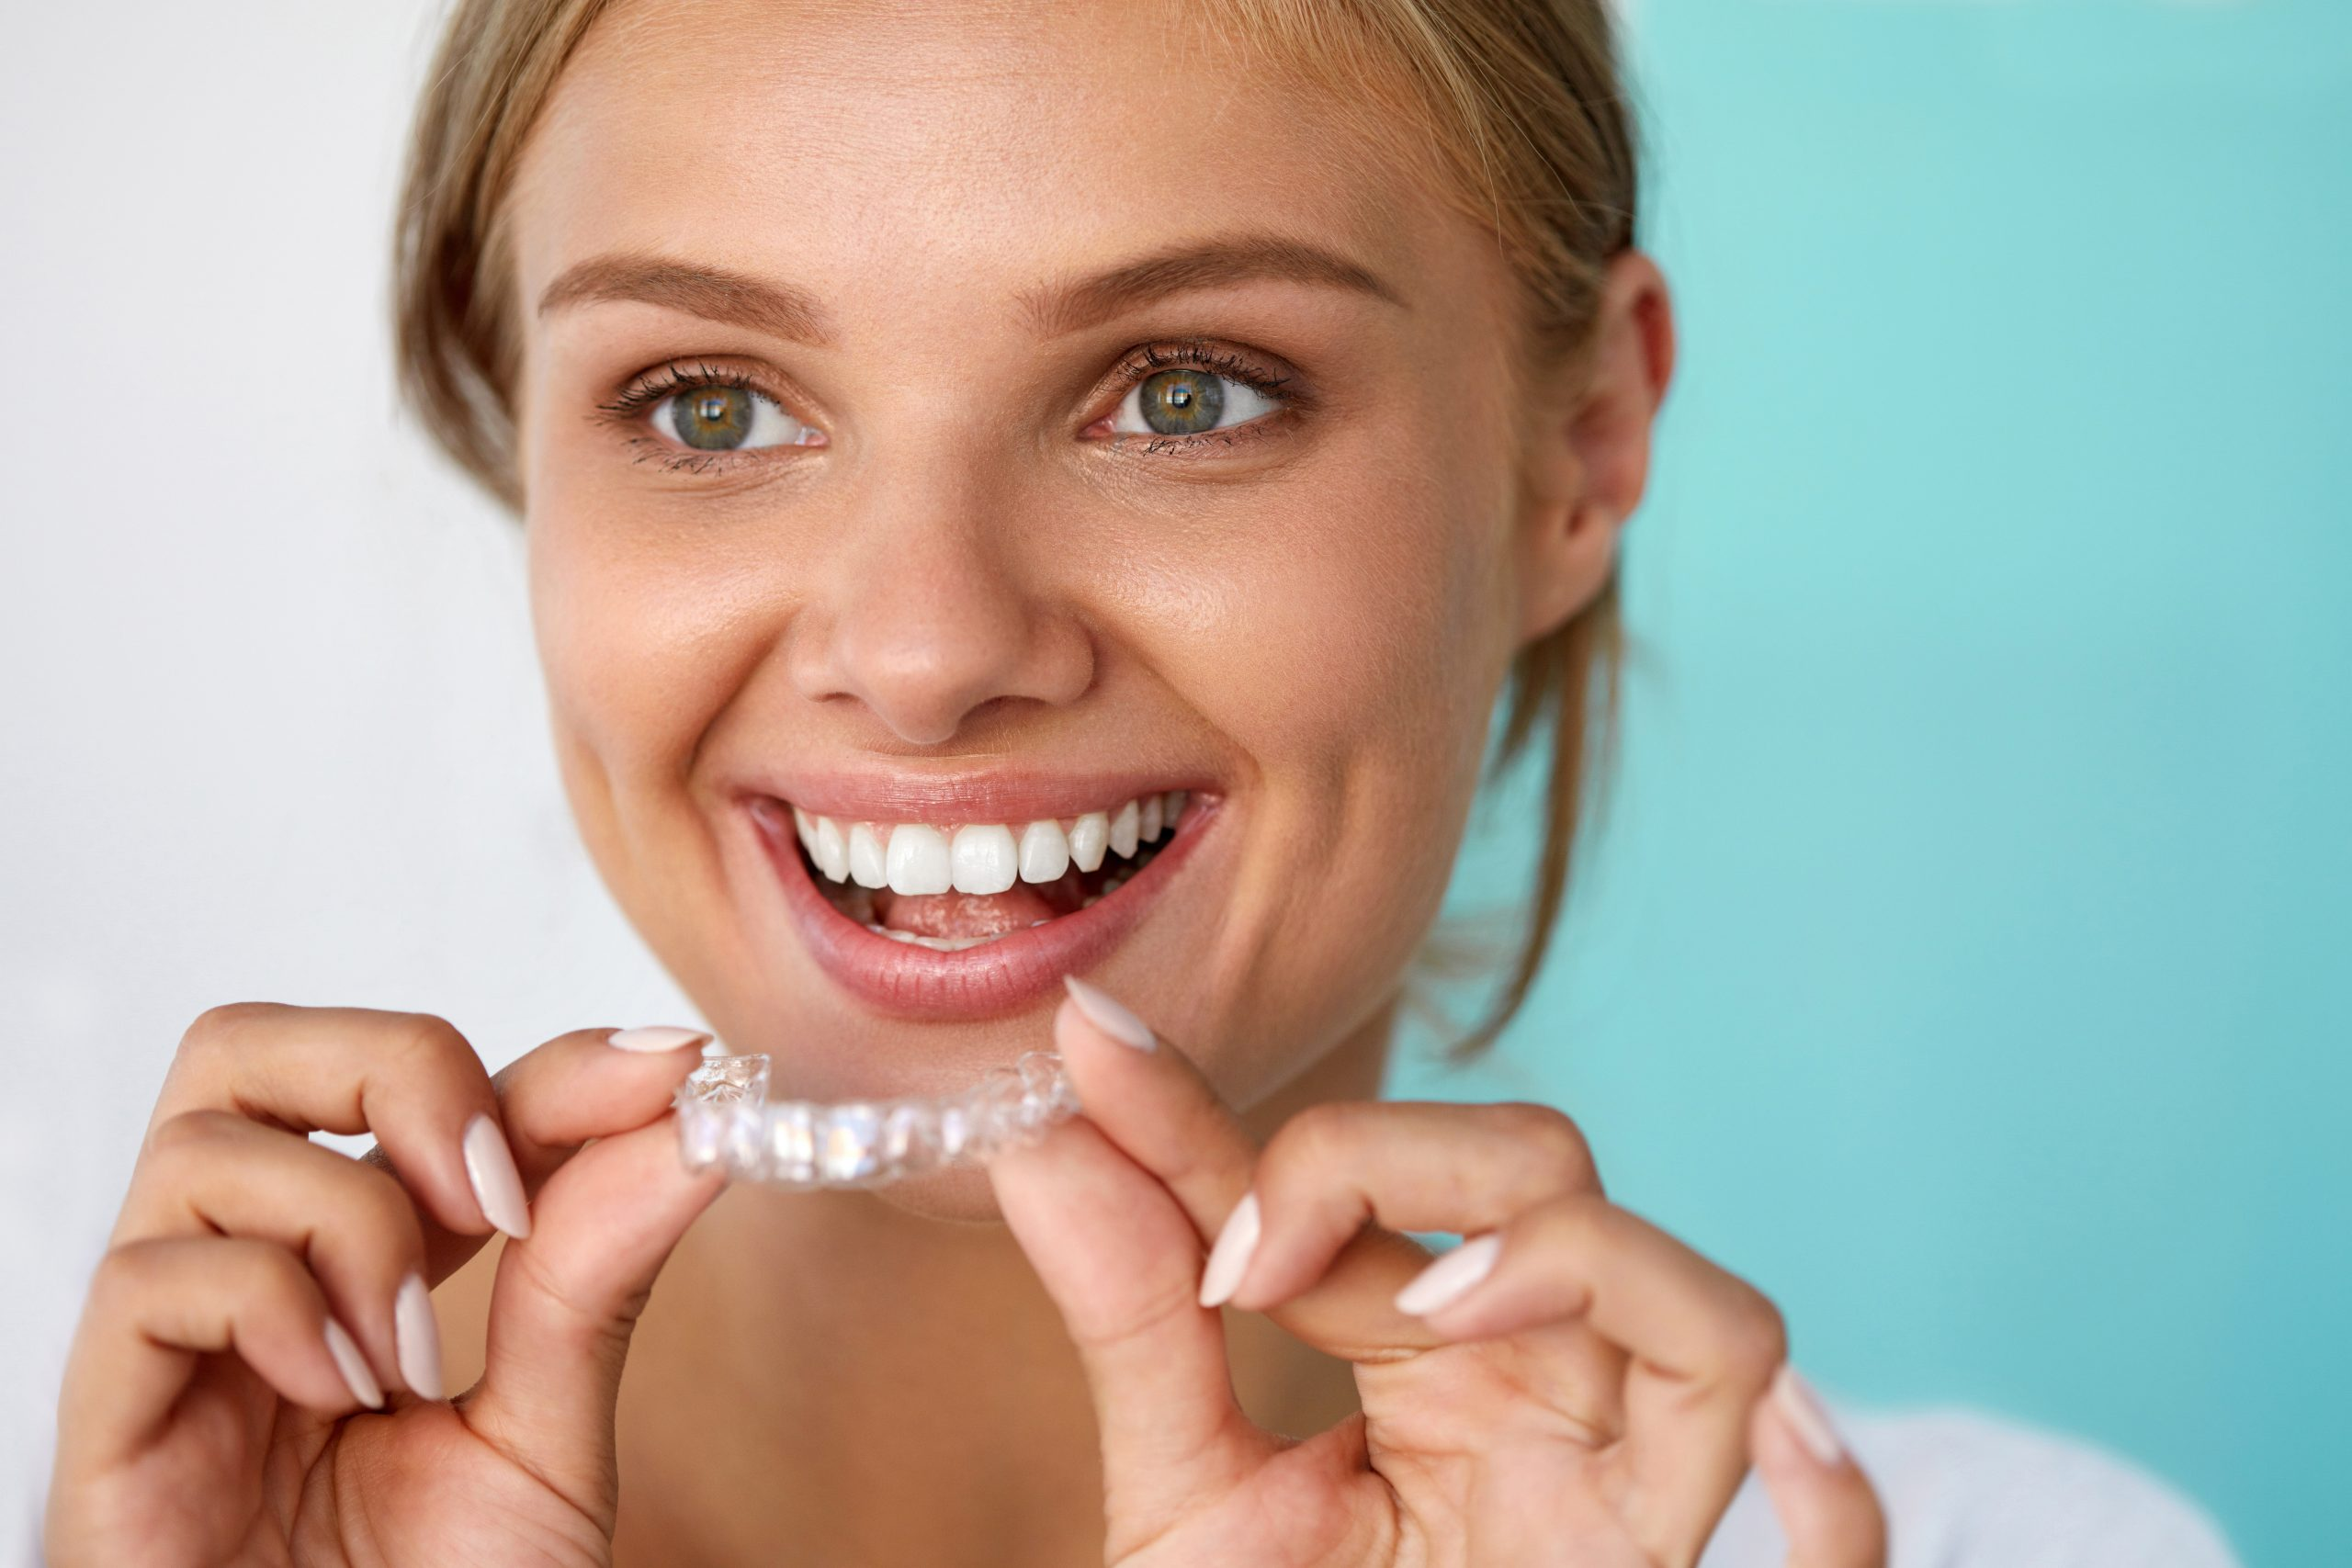 Straighten Your Summer Smile With ClearCorrect